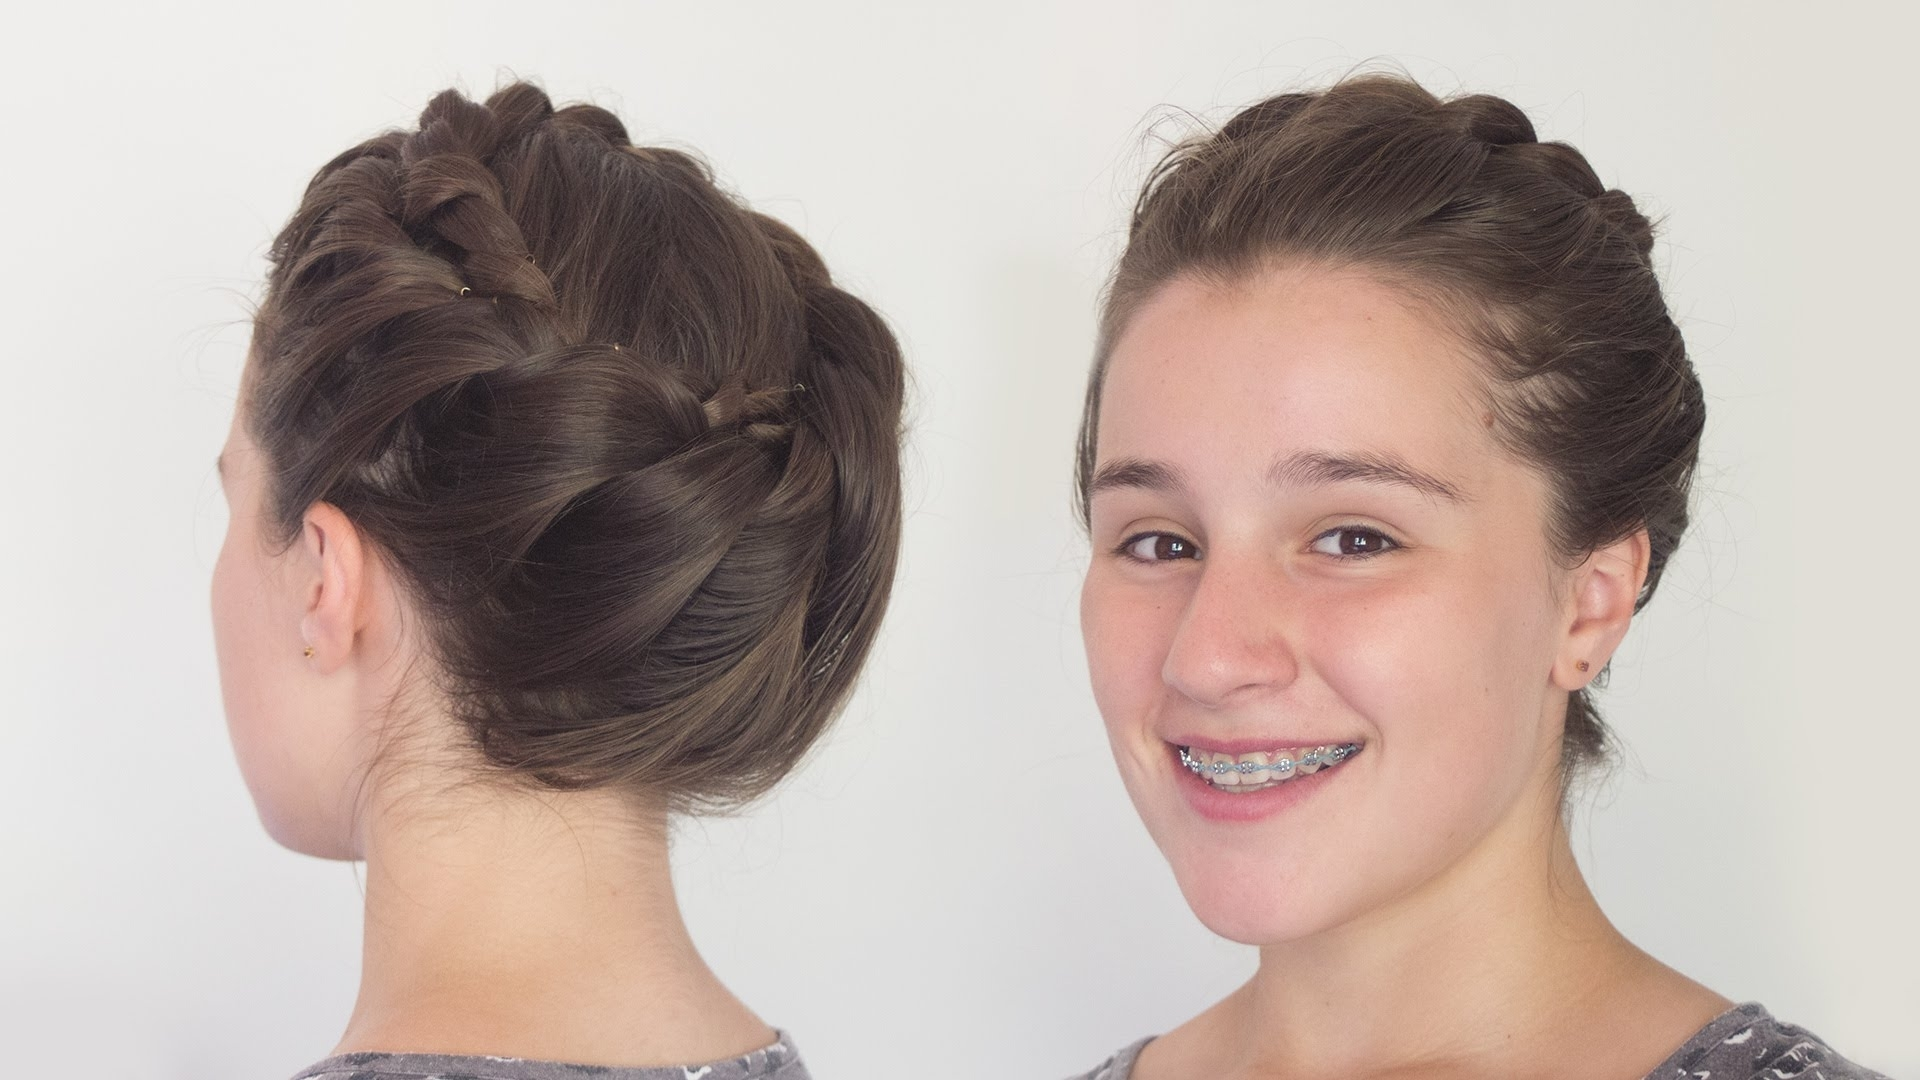 Current Braided Greek Hairstyles Throughout Greek Goddess Crown Braid Hairstyle For Long Hair – Youtube (View 5 of 15)